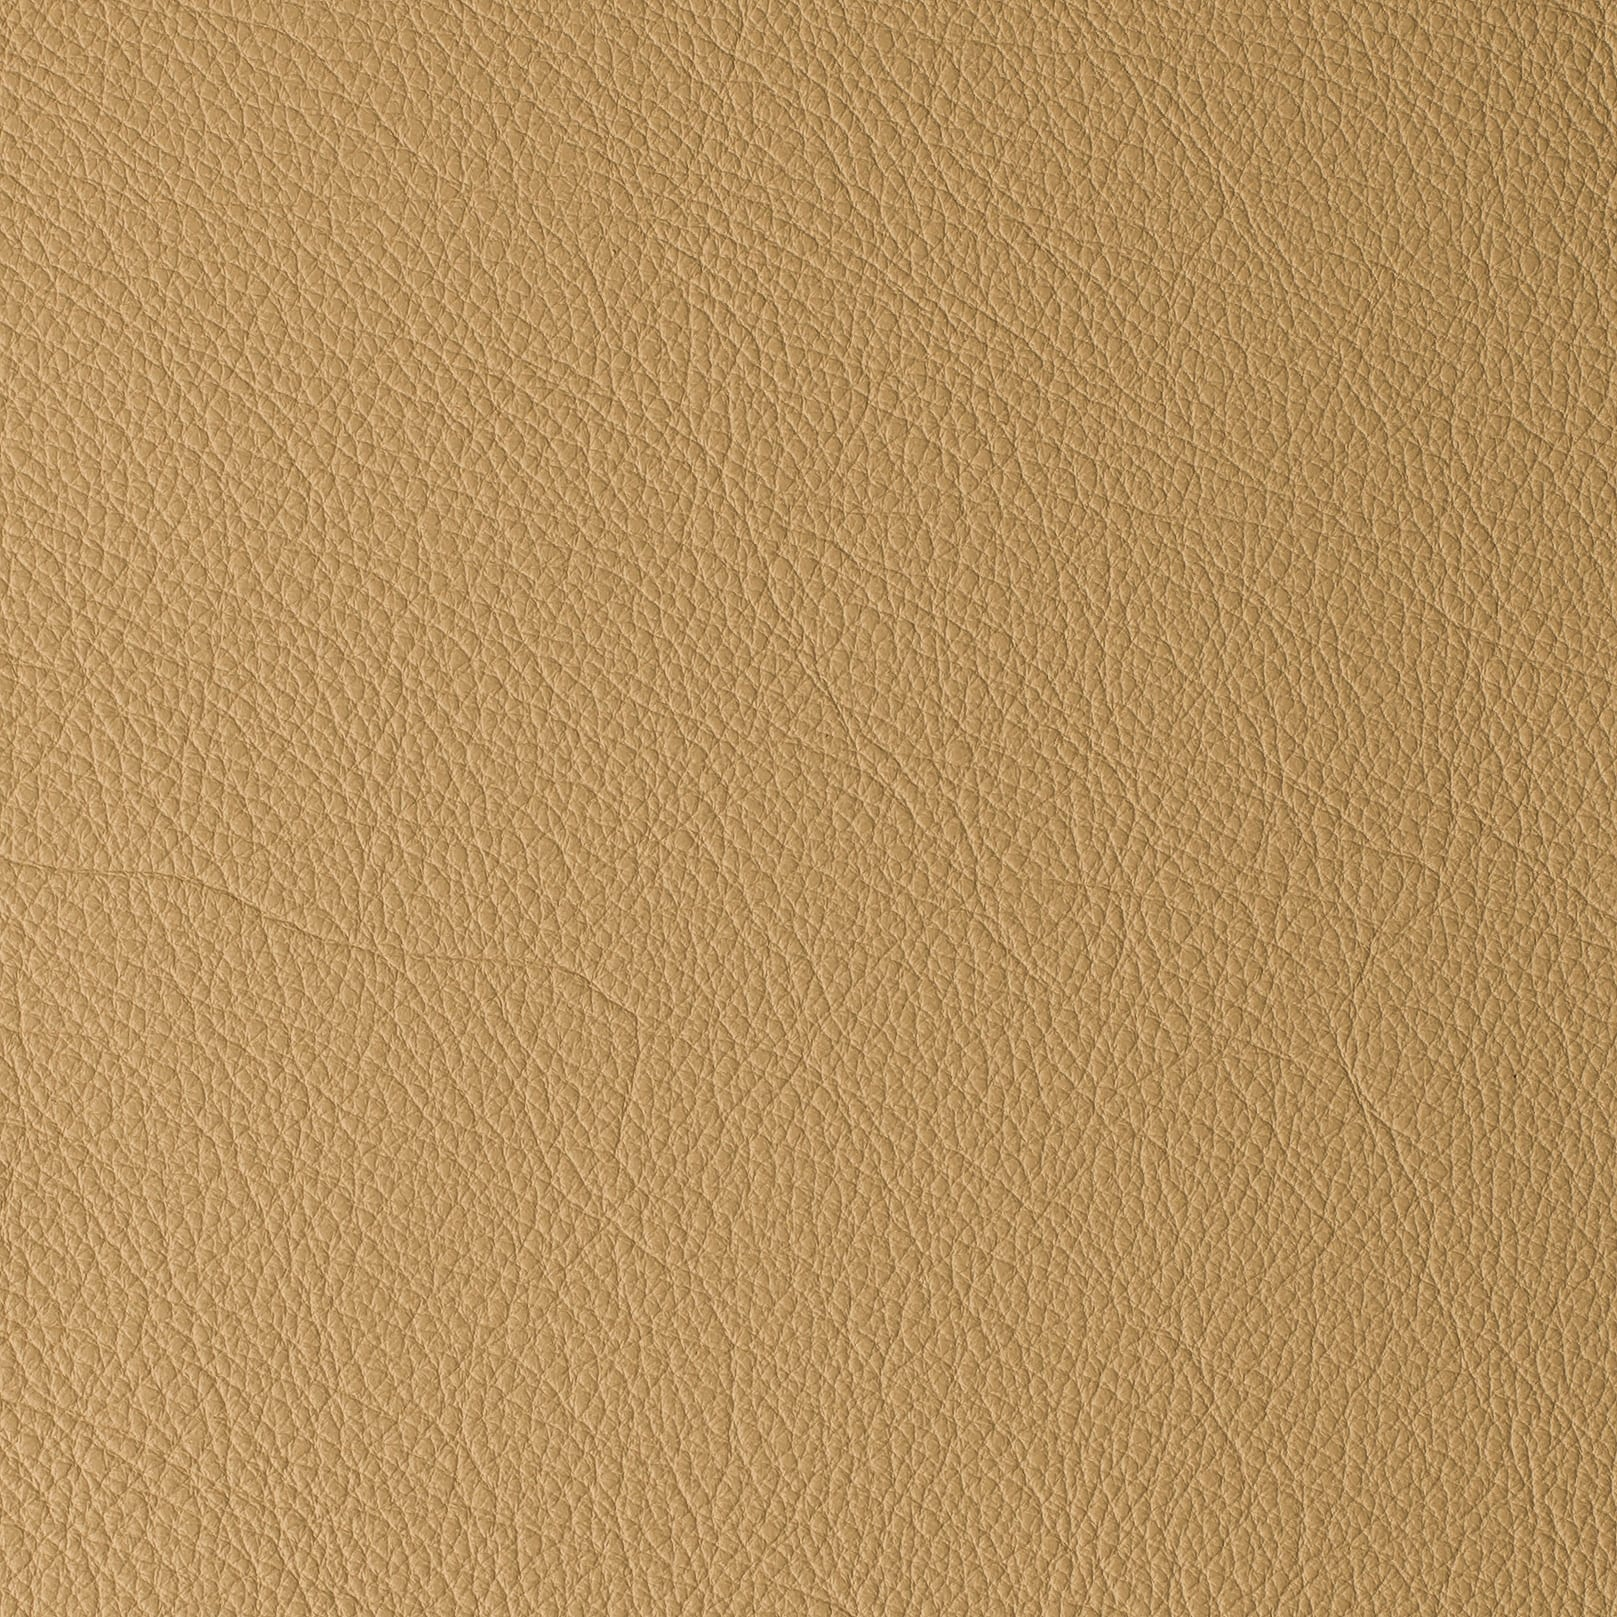 LAGUNA SAVANNA 08606 - fabric finishes